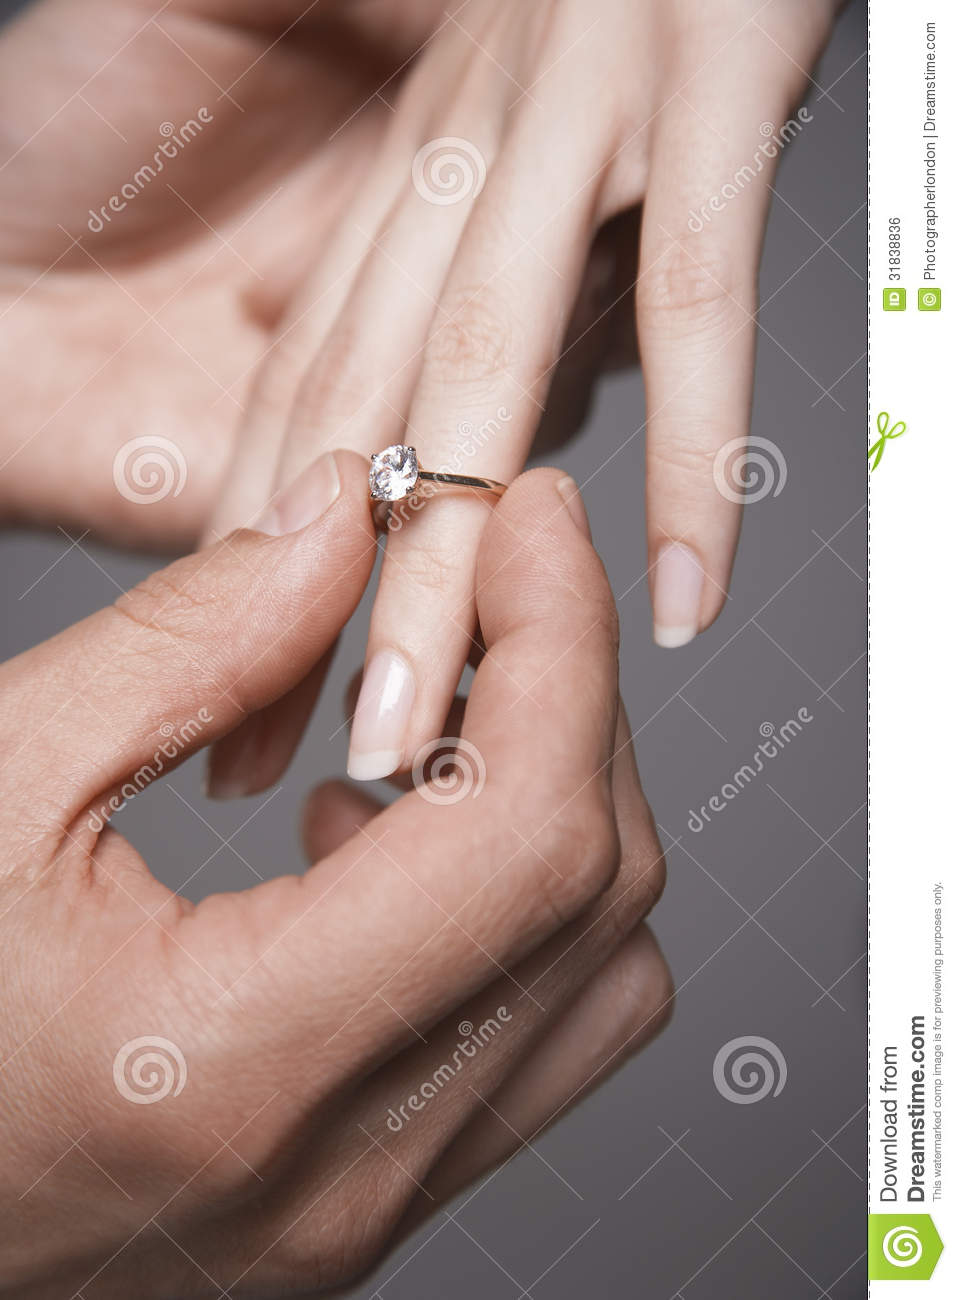 Man Placing Engagement Ring In Woman\'s Finger Stock Photo - Image of ...